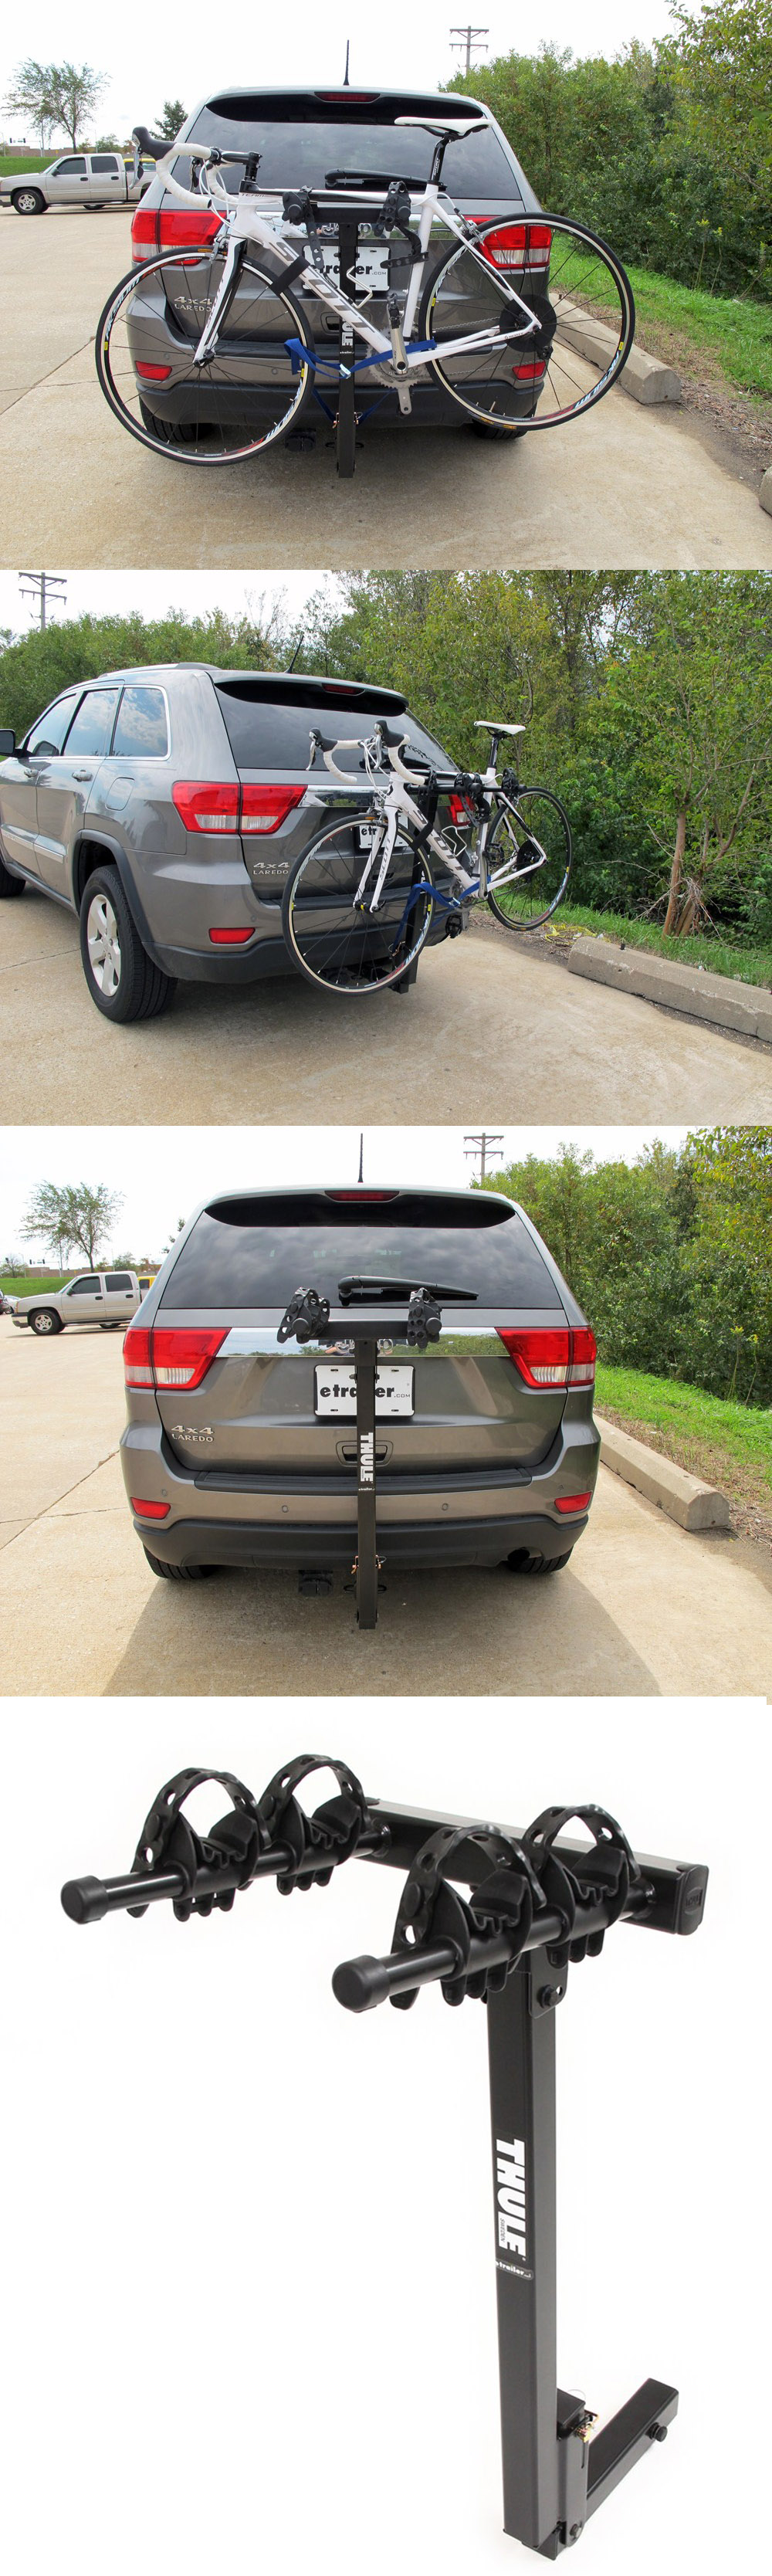 Dual Arm Hitch Mounted Bike Rack Efficiently Transports Bikes To And Form The Biking Site Compatible With The Jeep Cheroke Hitch Bike Rack Bike Jeep Cherokee